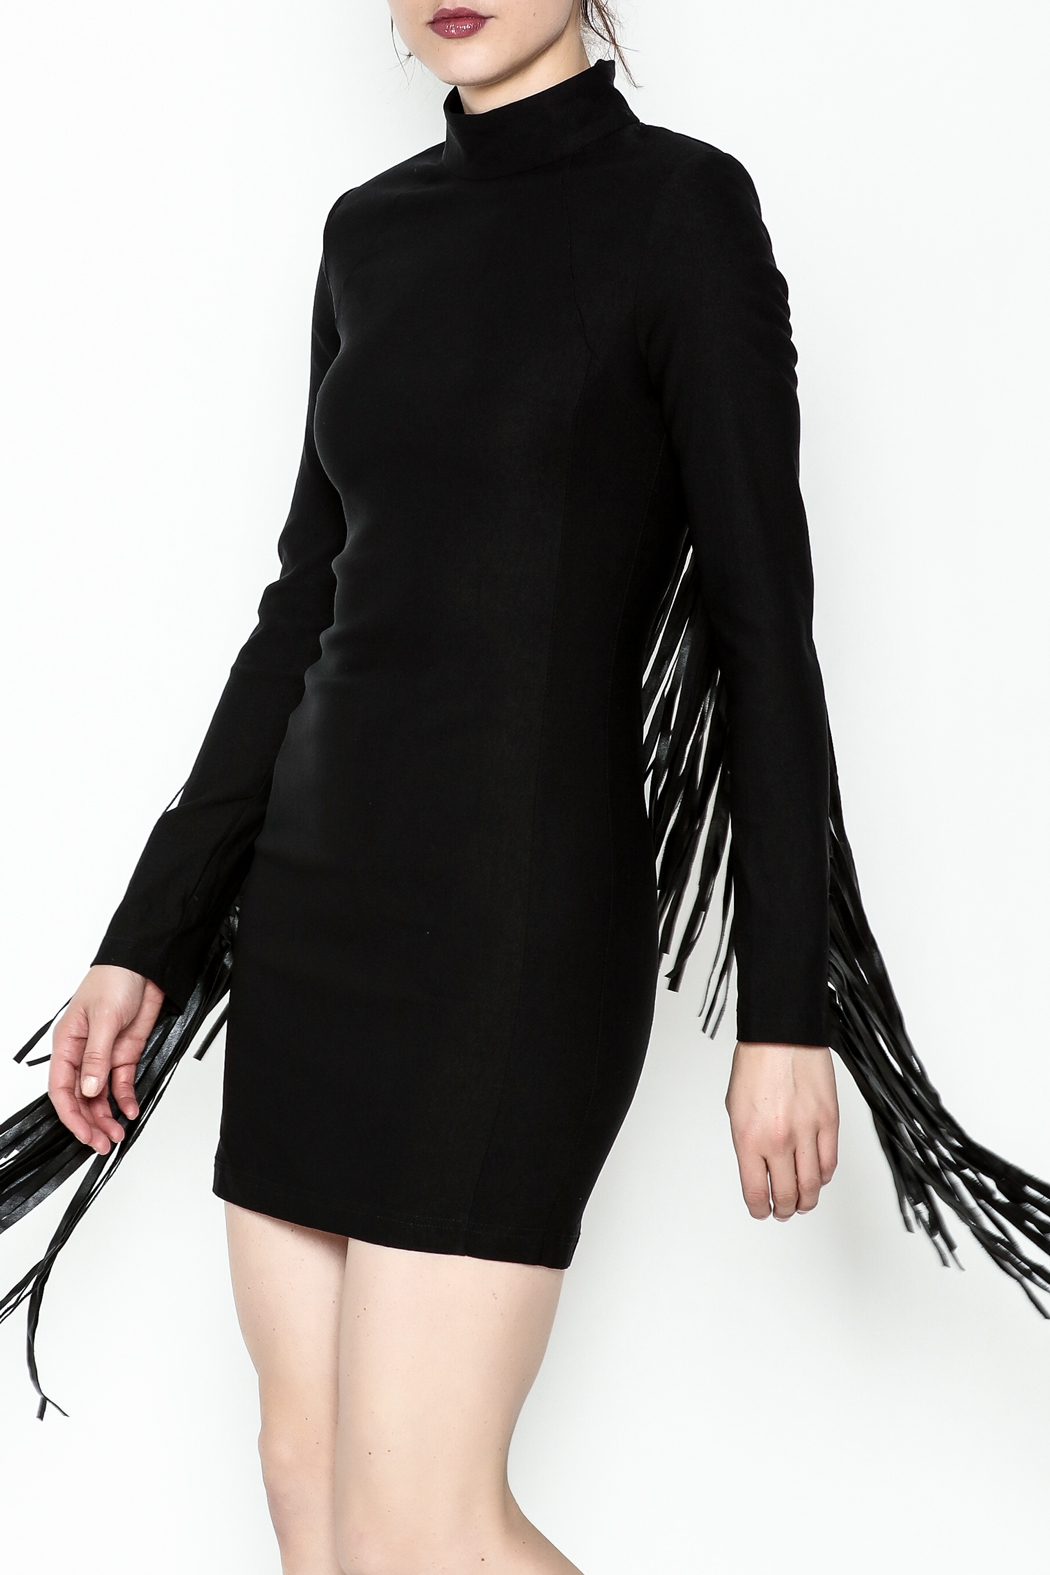 LIFTED Boutique Black Fringe Dress - Main Image